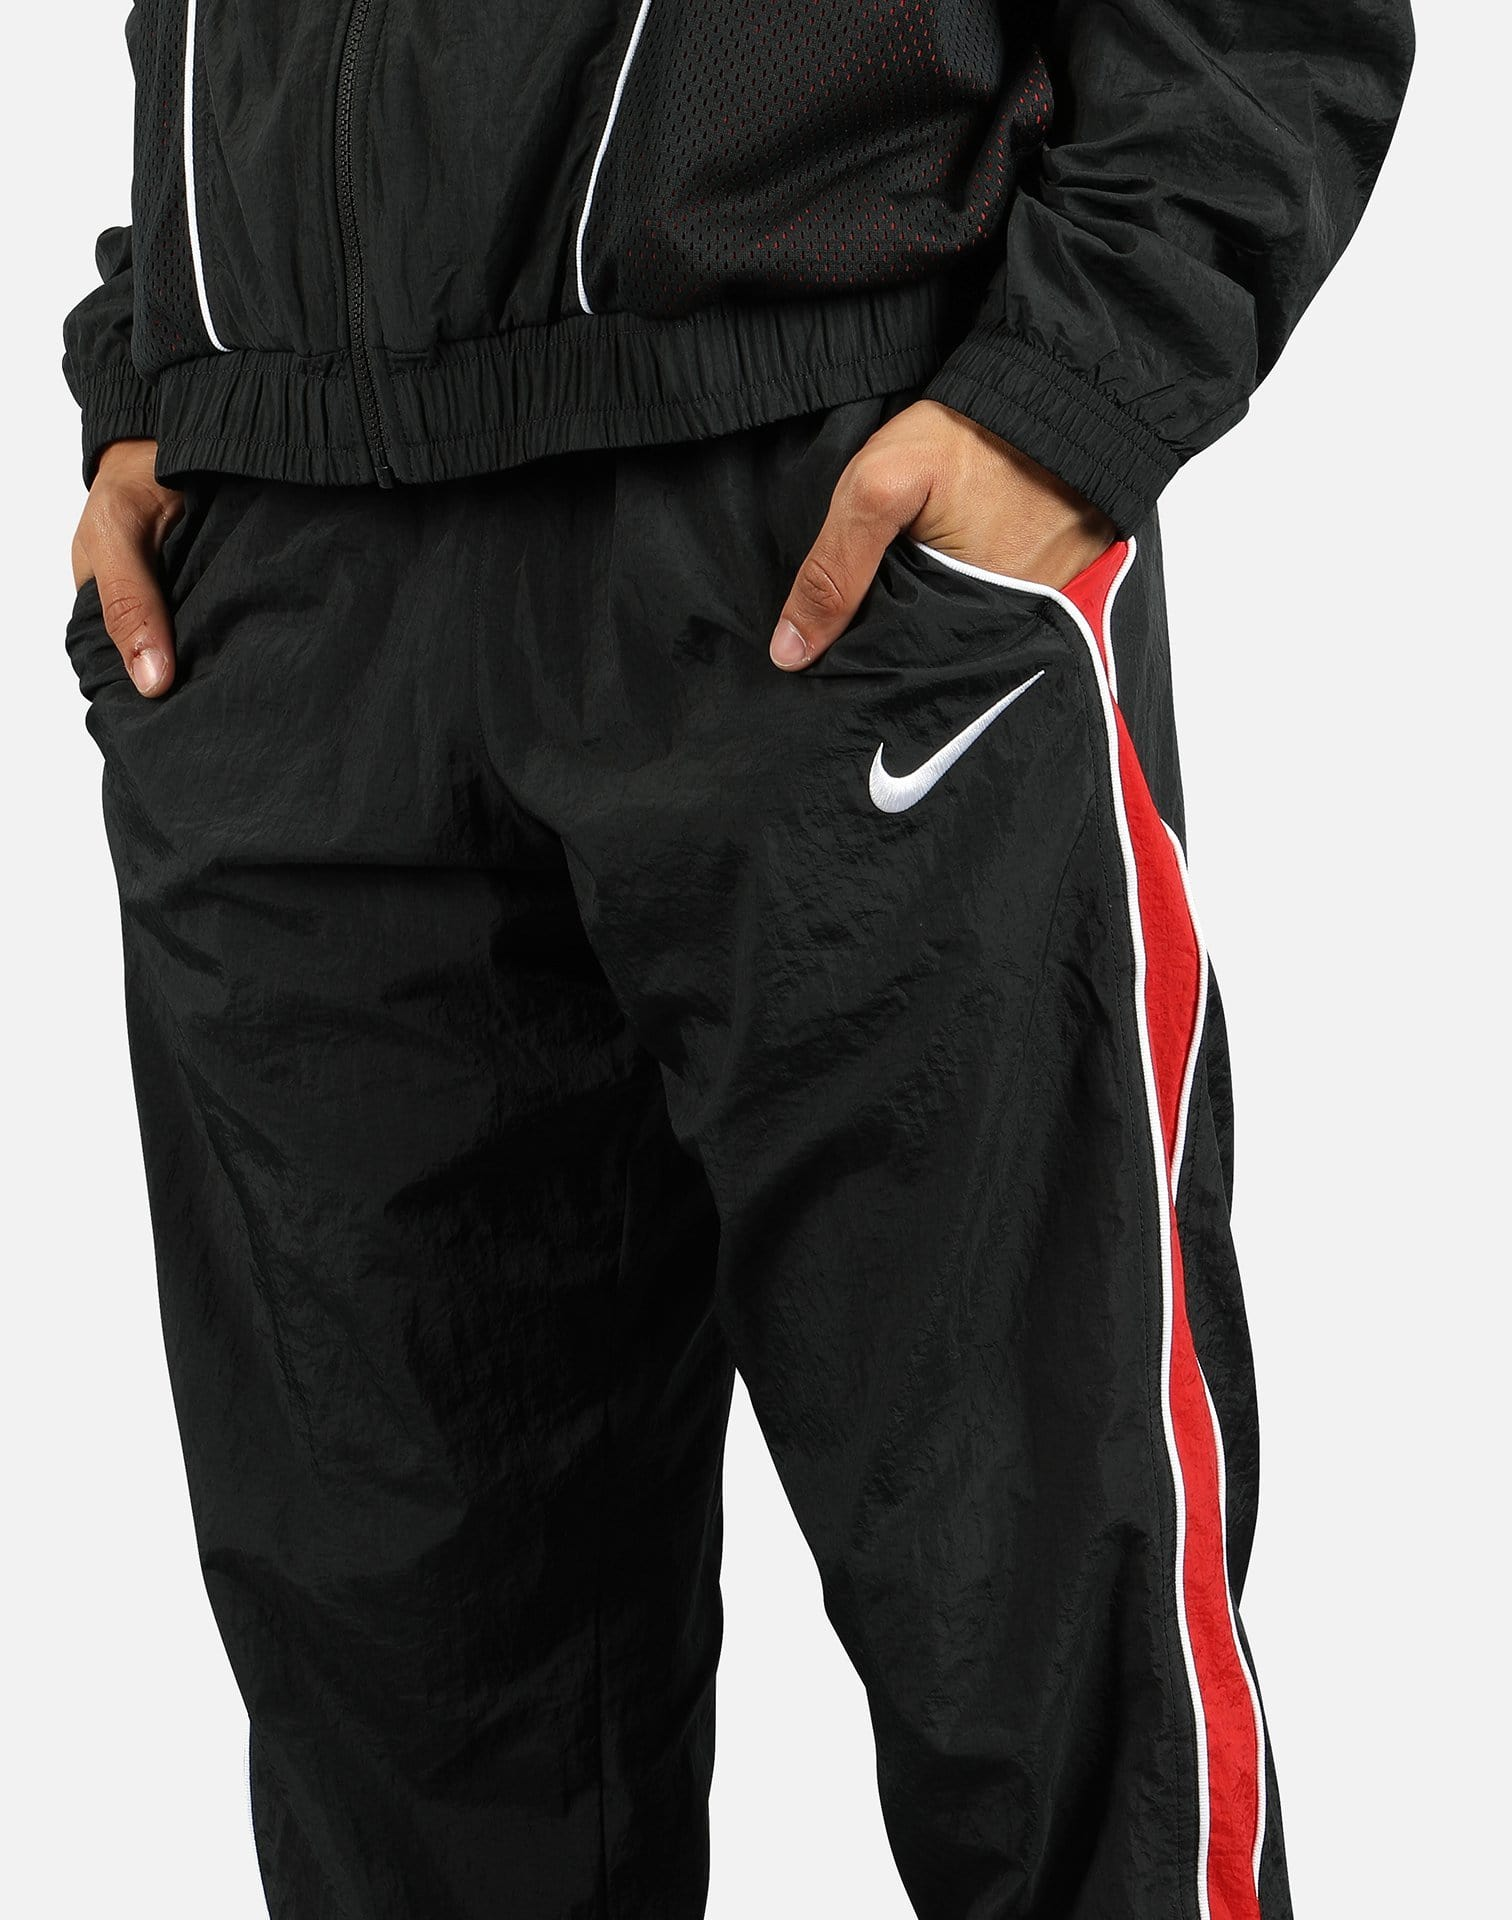 Nike Men's Throwback Basketball Track Pants